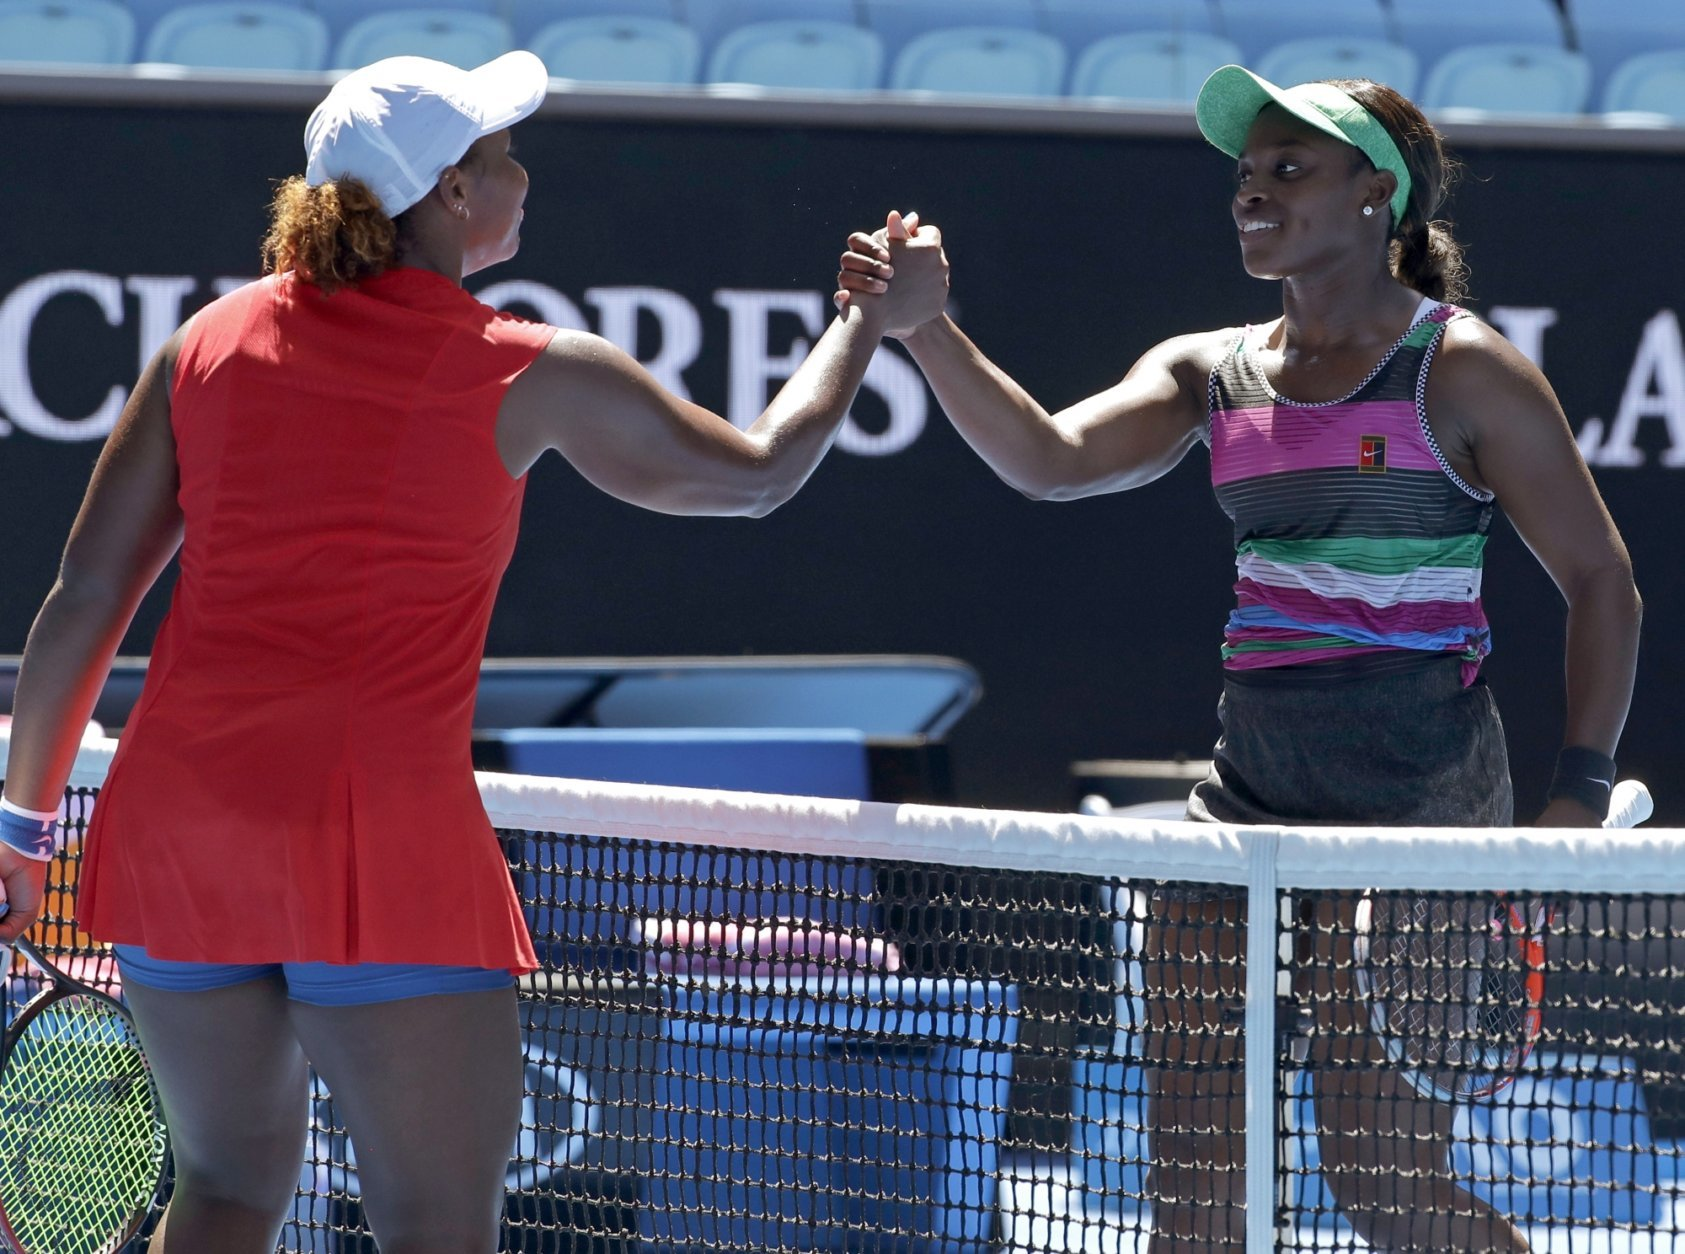 United States' Sloane Stephens, right, is congratulated by compatriot Taylor Townsend after winning their first round match at the Australian Open tennis championships in Melbourne, Australia, Monday, Jan. 14, 2019. (AP Photo/Kin Cheung)